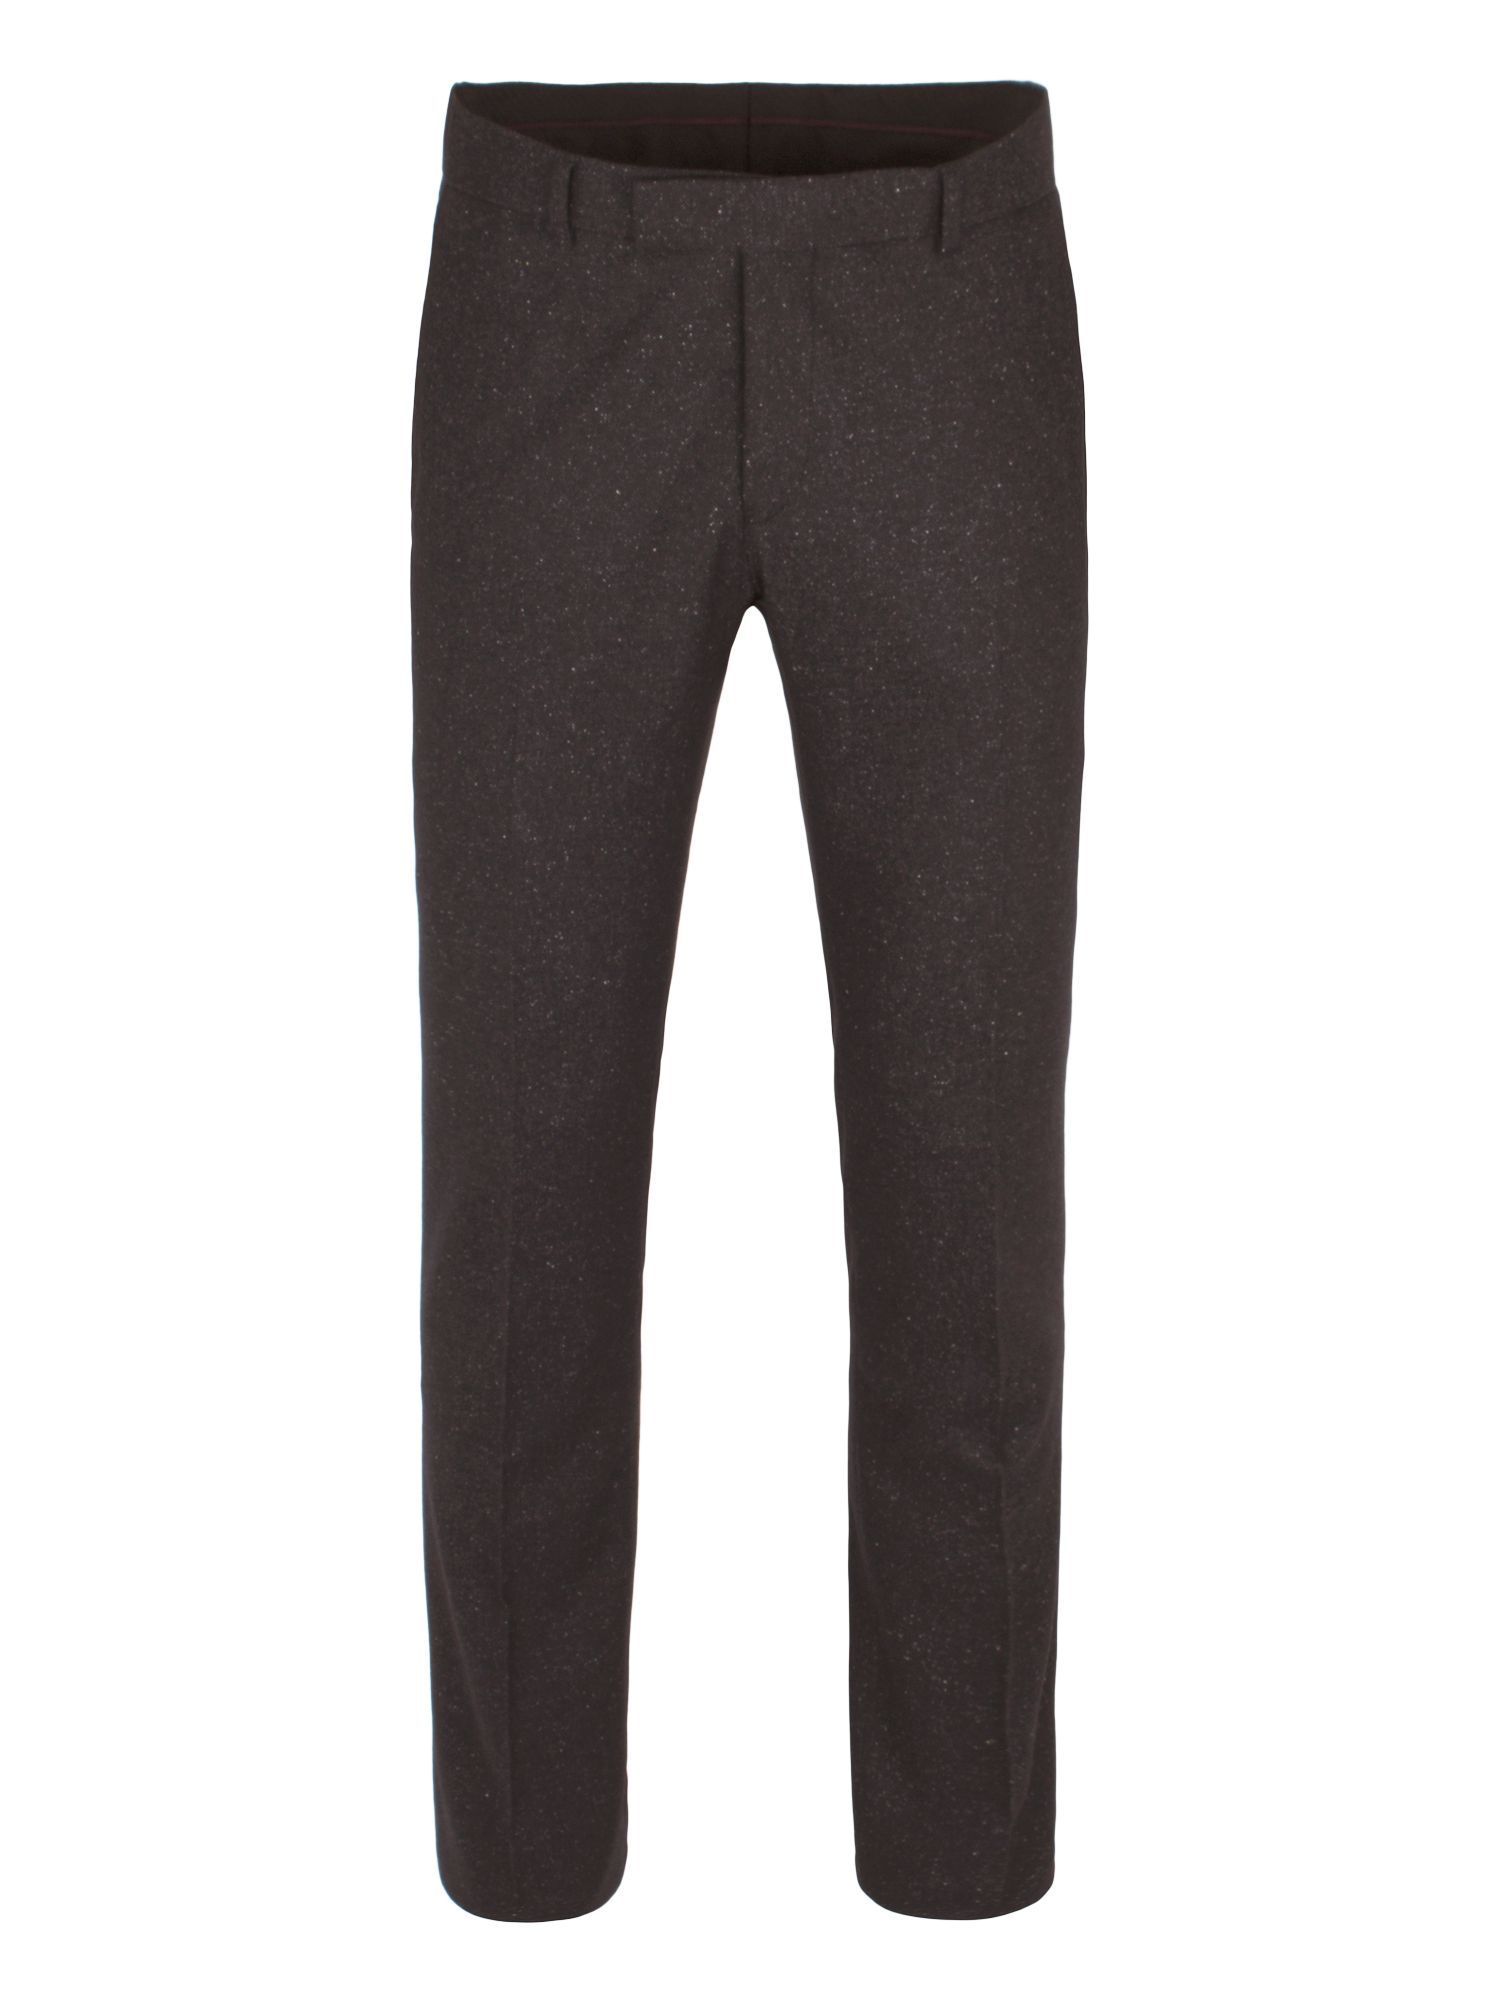 Alexandre of England Men's Alexandre of England Wilmington Speckle Suit Trouser, Charcoal